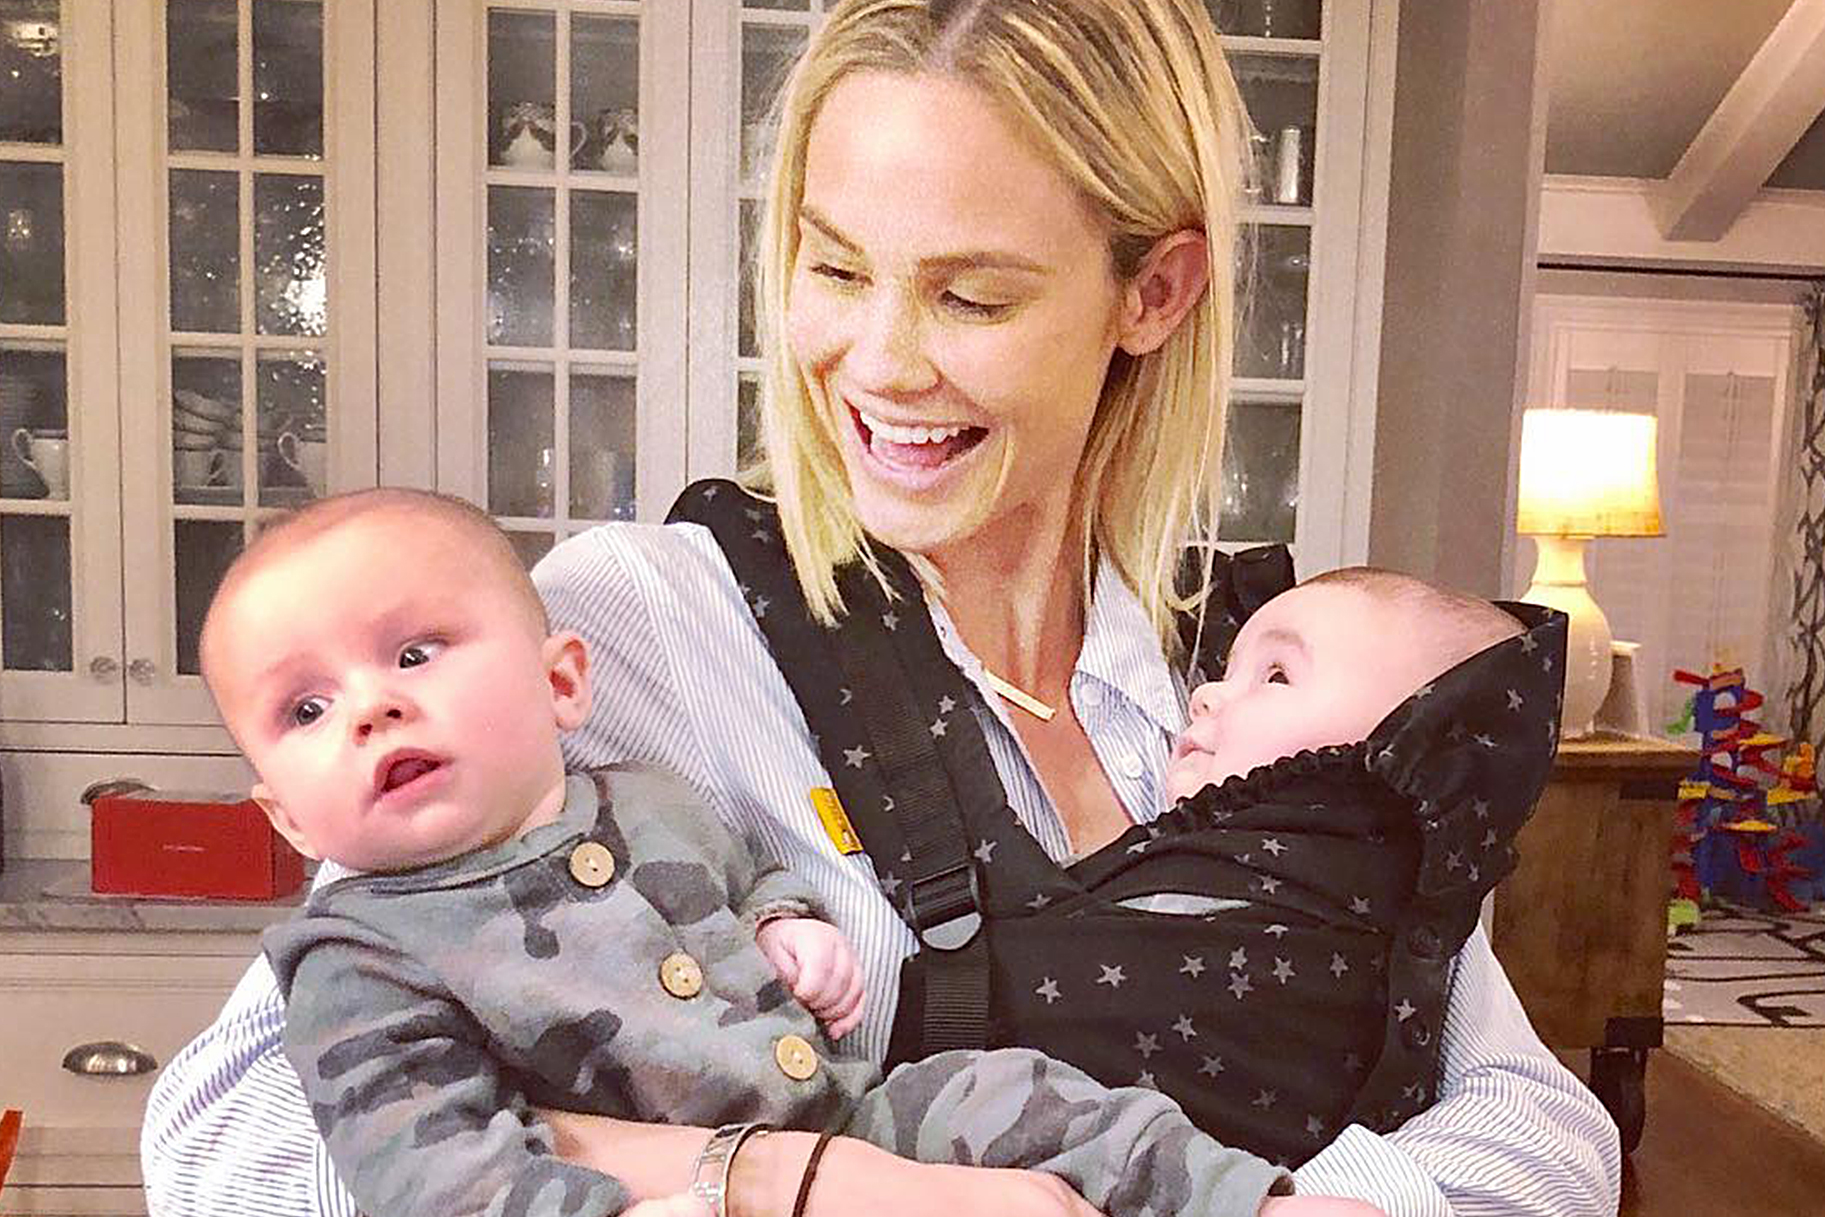 Meghan King Edmonds from 'RHOC' Shares Heartbreaking News About Her Son's 'Irreversible Brain Damage'